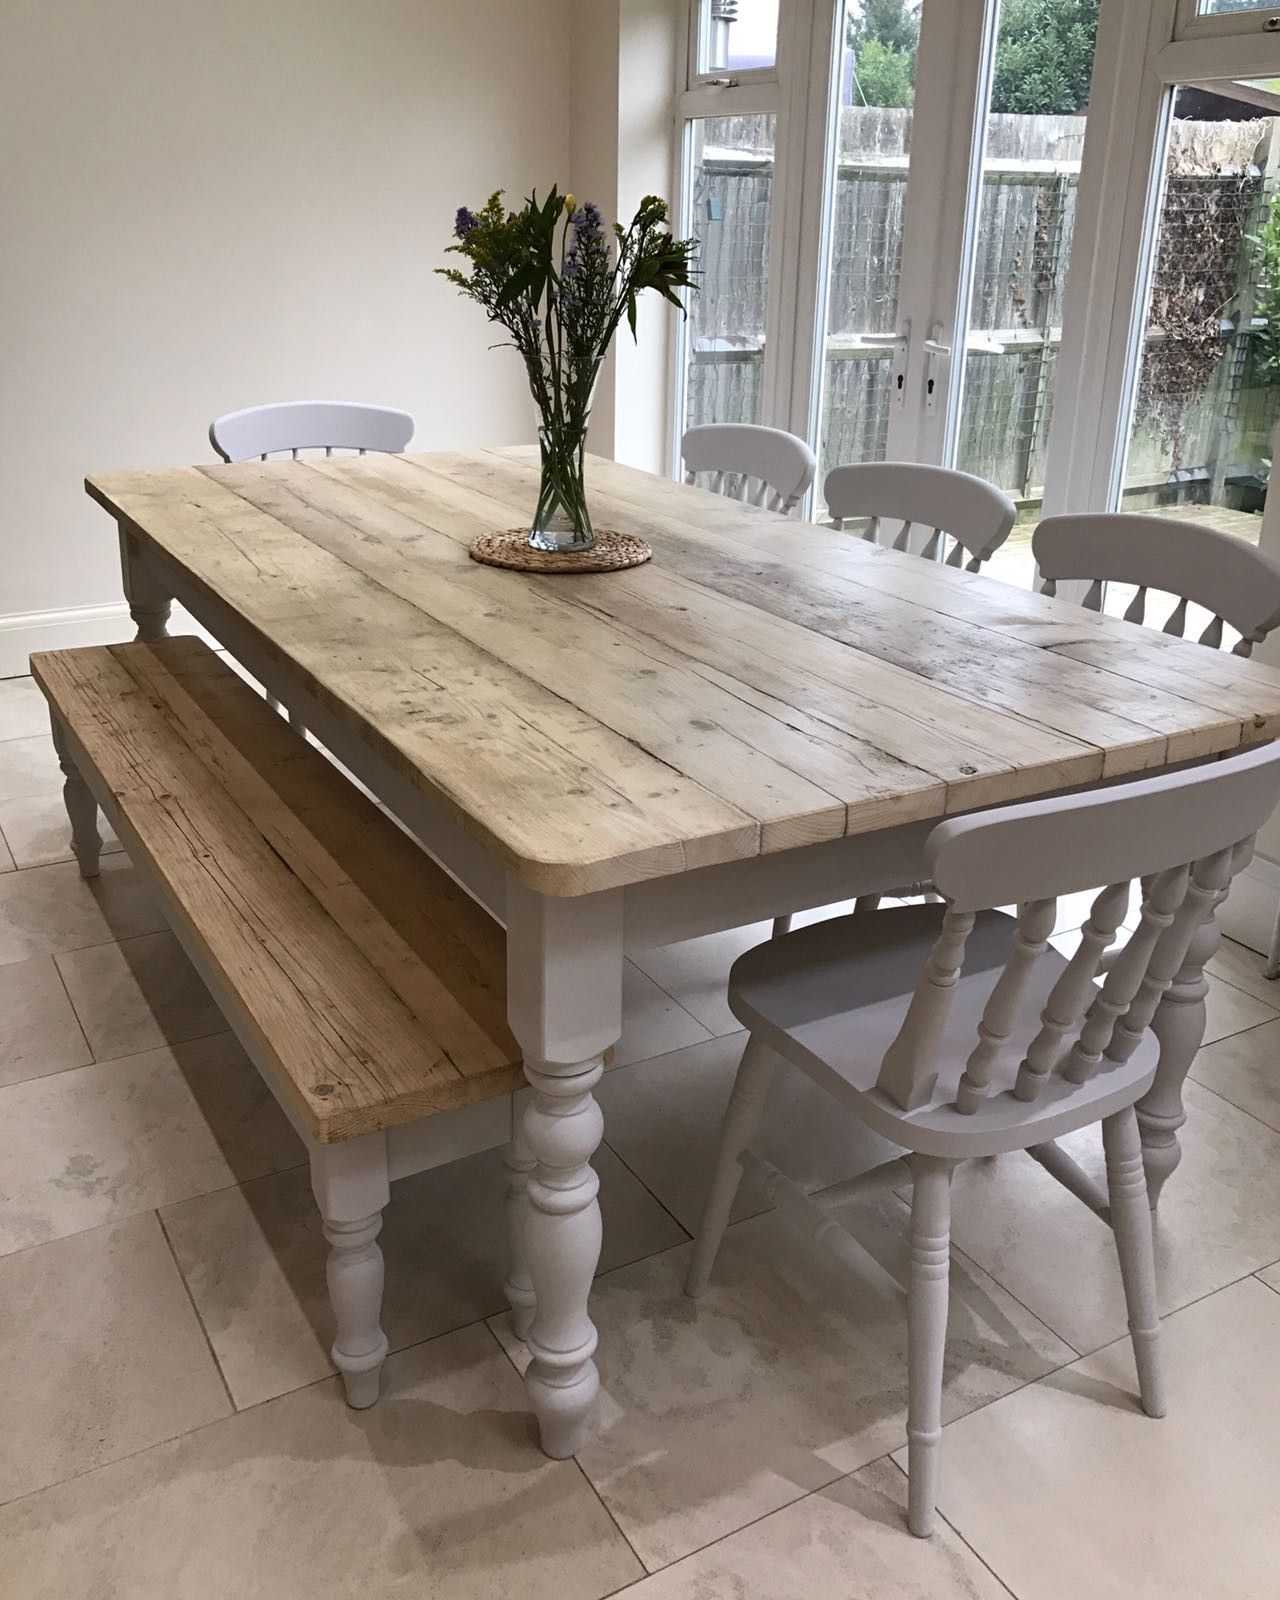 Country Dining Table With Bench: The Florence Clear' Table Made From Reclaimed Wood